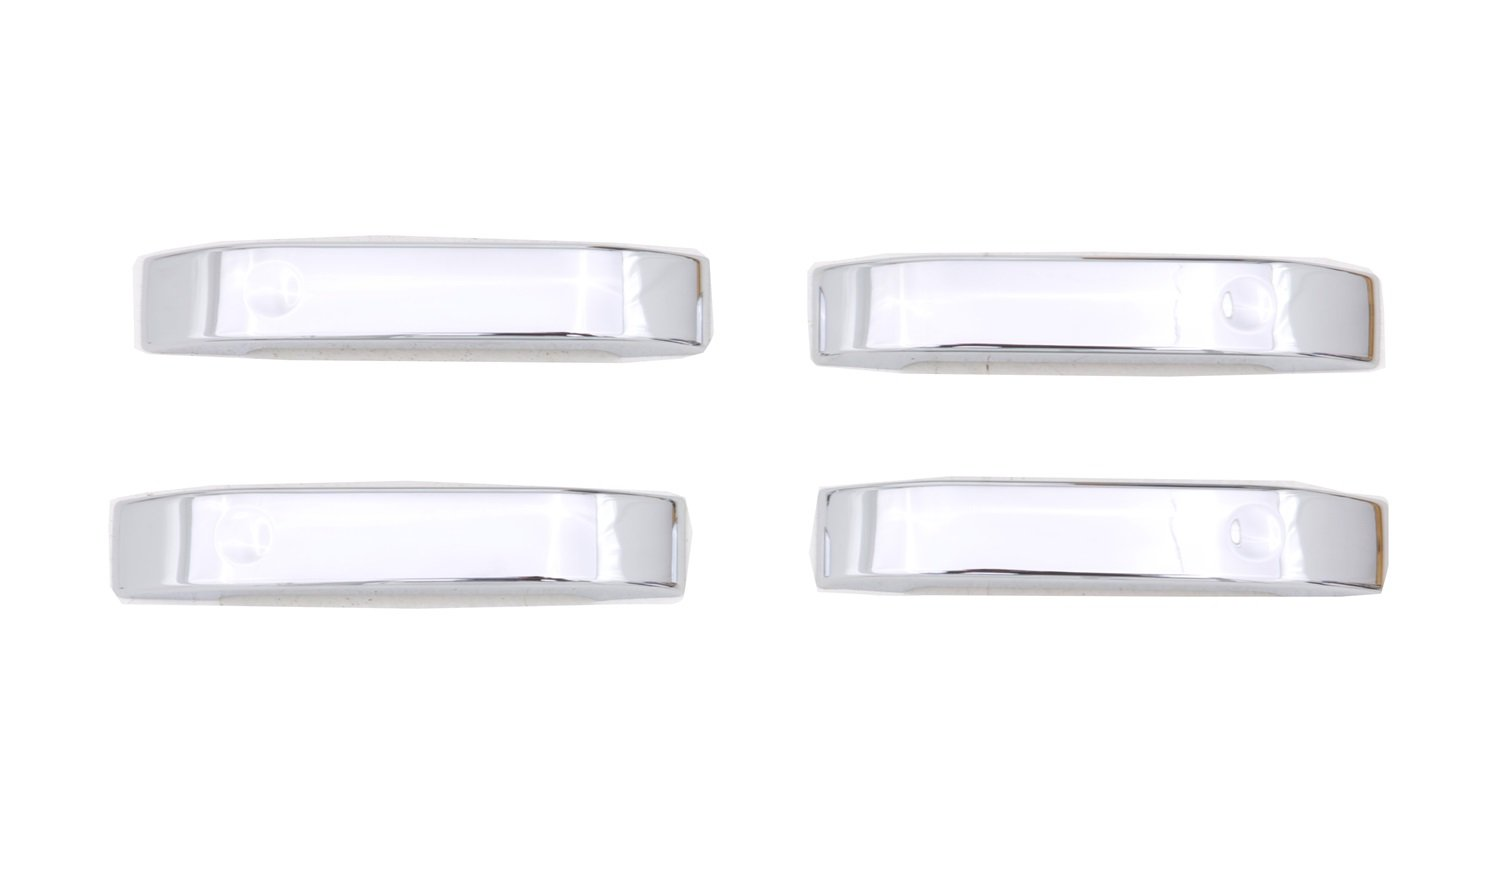 Handle Only Auto Ventshade 685402 Chrome Door Lever Covers 4-Door Set for 2004-2014 Ford F-150